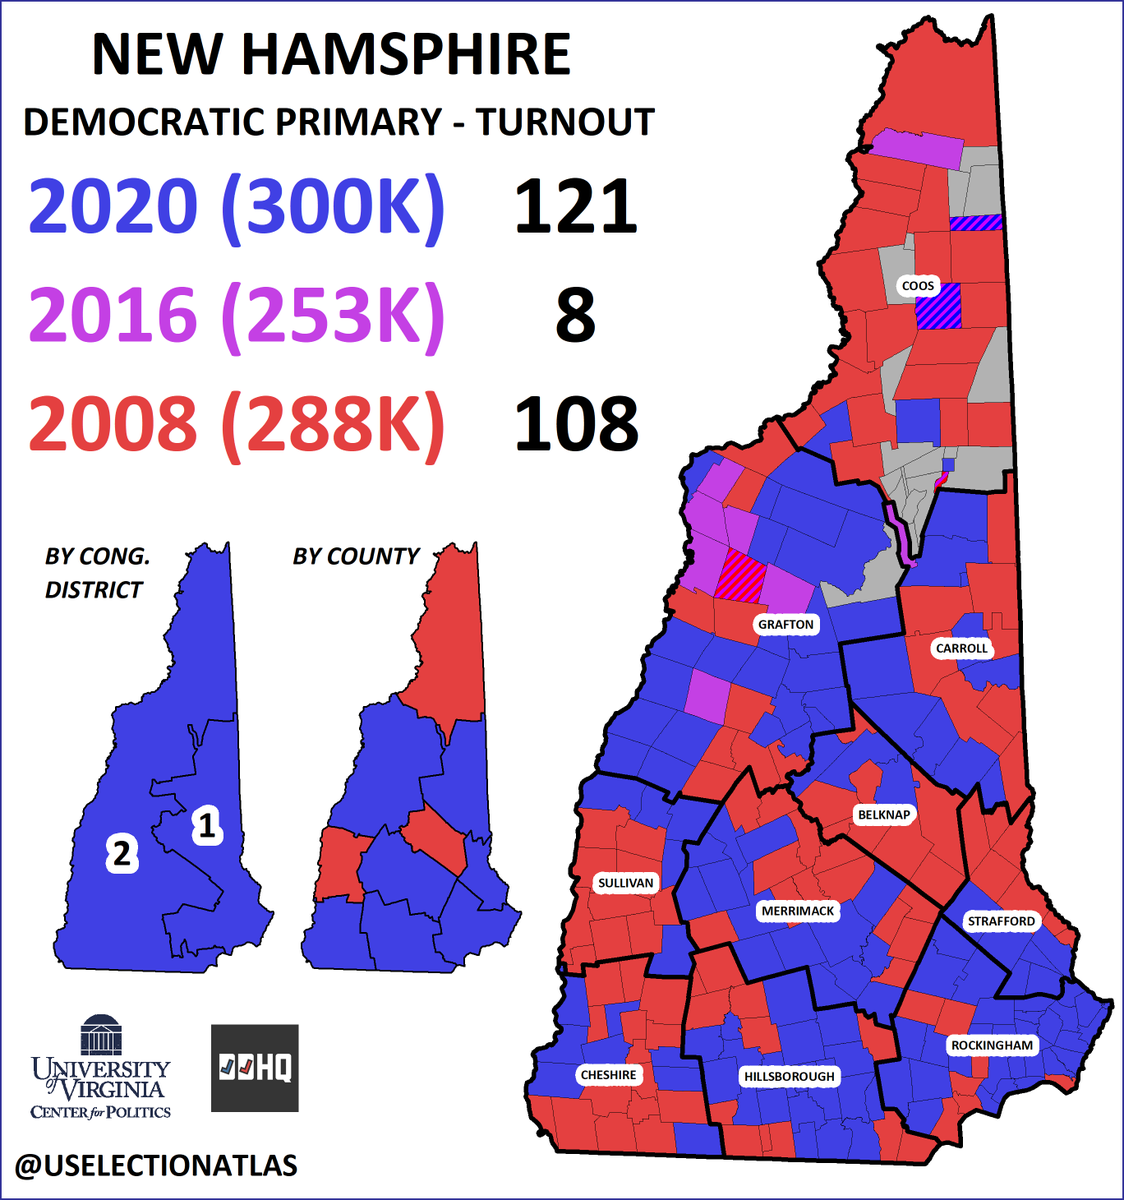 Unofficial turnout for the New Hampshire Democratic primary is settling at about 300K votes cast. This surpasses 2008's 288K and 2016's 253K. 121 towns (blue) cast the most votes this week, 108 (red) had the most in 2008, and 8 had the most in 2016 (purple). #fitn #NHprimary2020